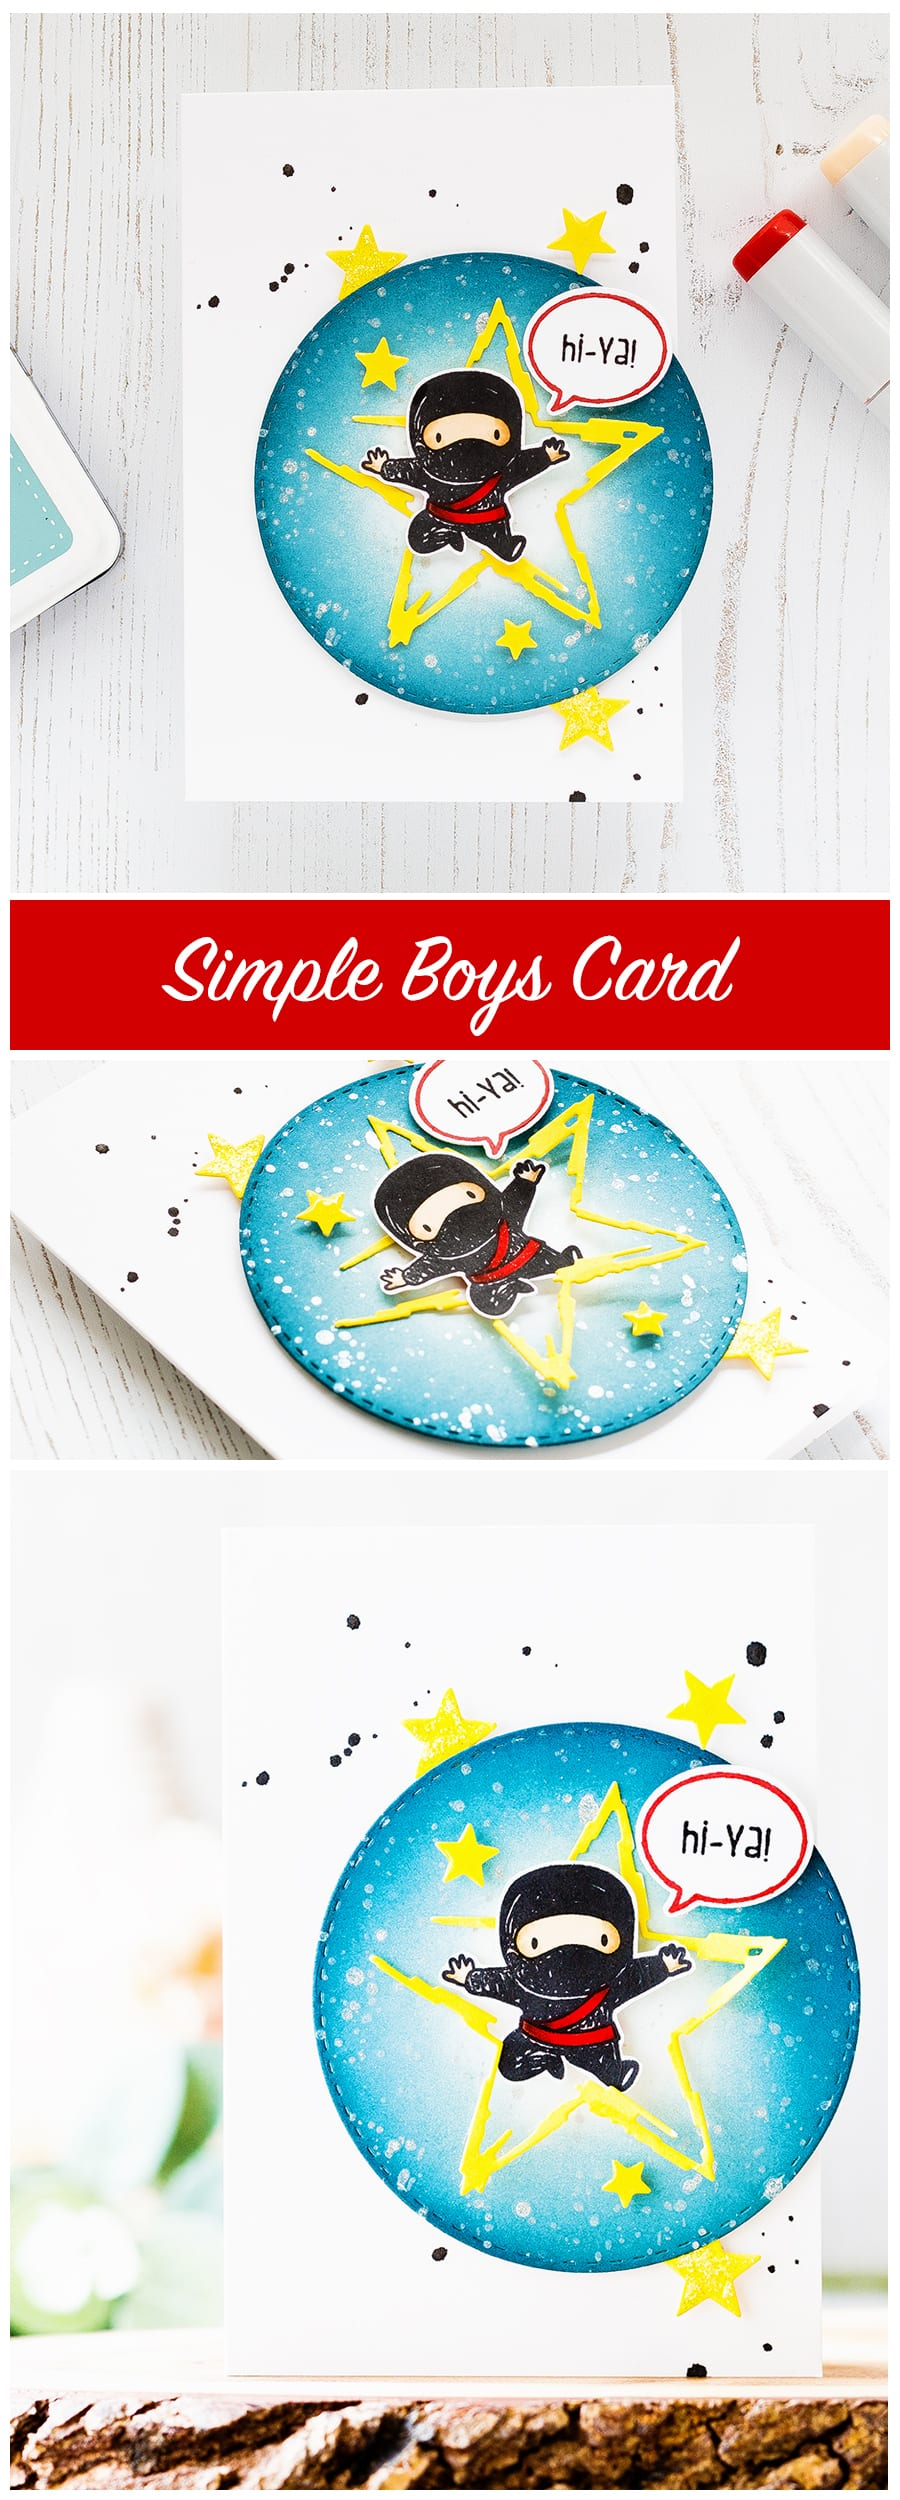 Fun but simple and easy Ninja boys card. Find out more by clicking on the following link: https://limedoodledesign.com/2016/12/hi-ya-simple-boys-card/